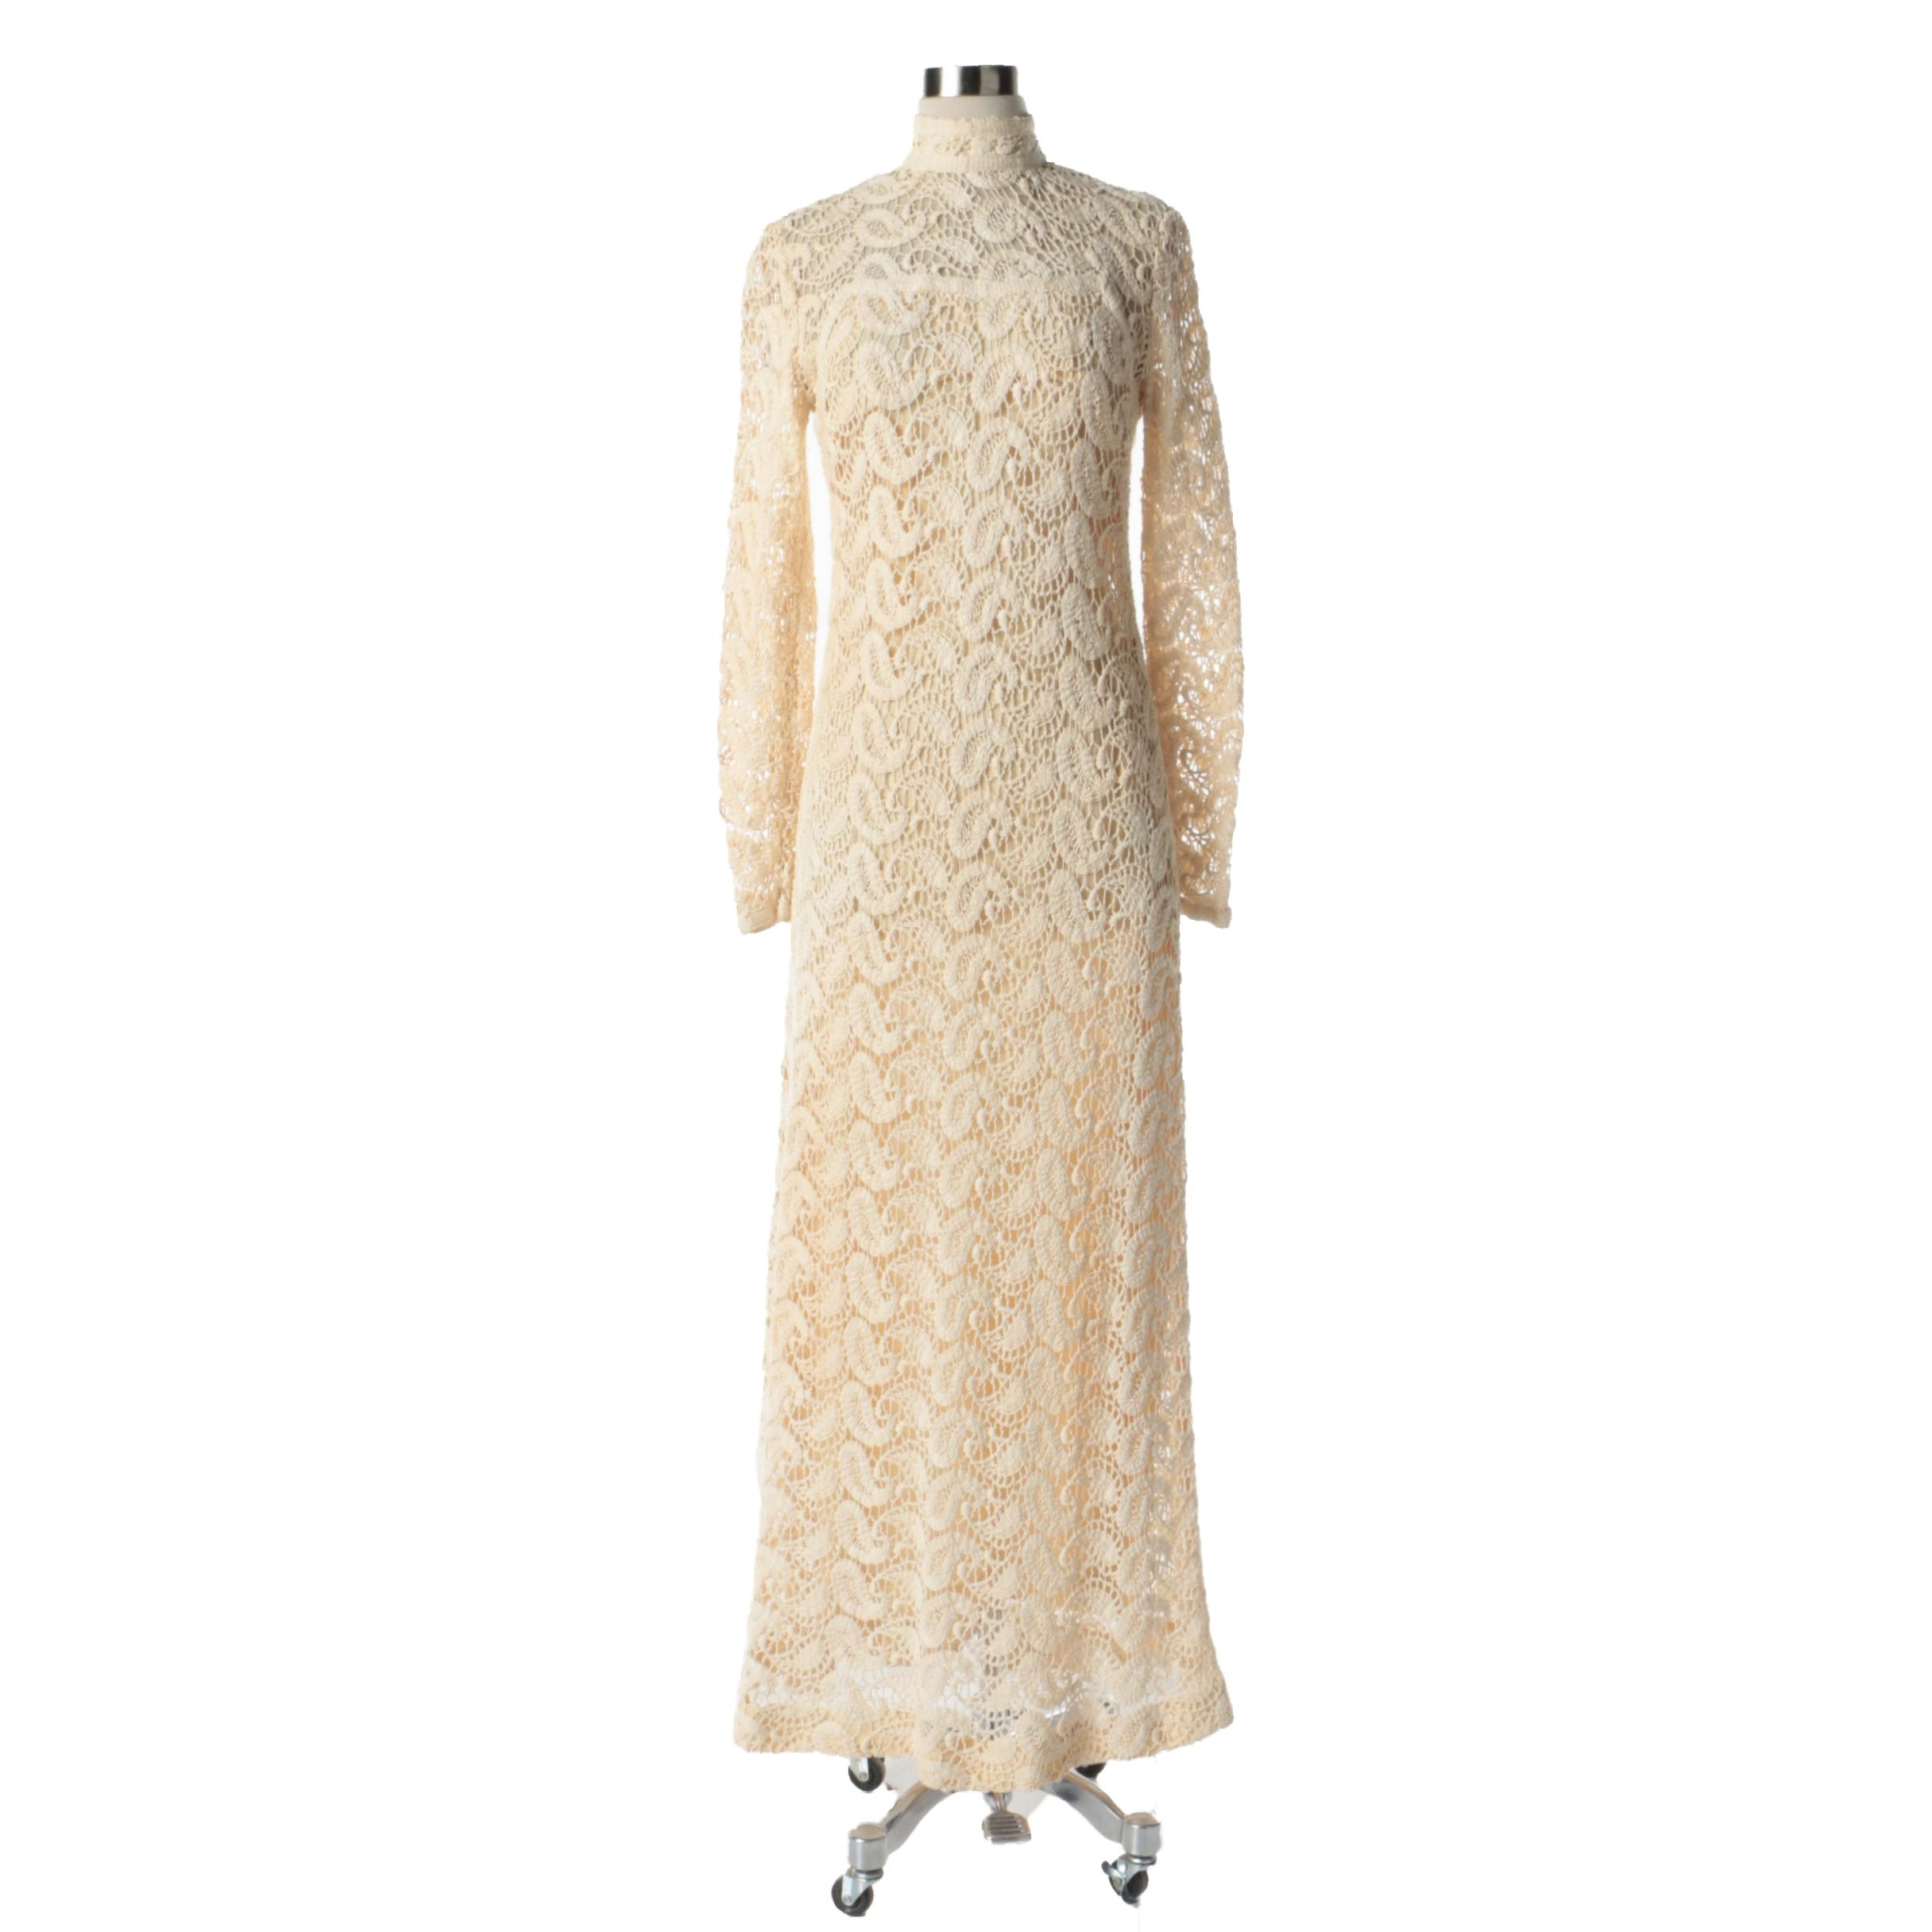 1960s Vintage Fred Perlberg Originals Ivory Crochet Lace Paisley Dress